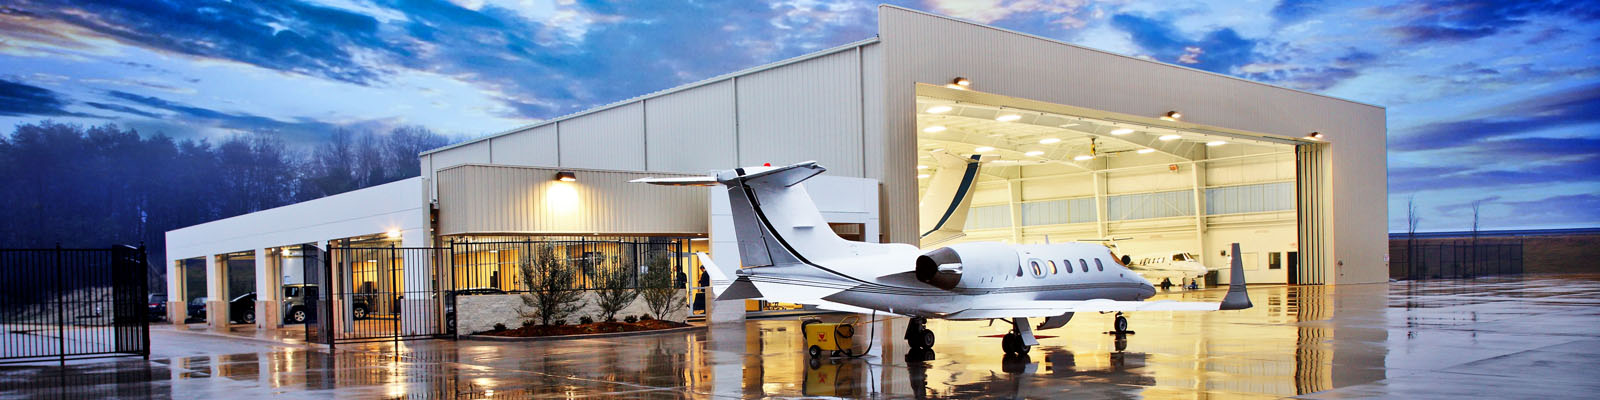 Corporate Aircraft Parts Programs by Aircraft Parts Store